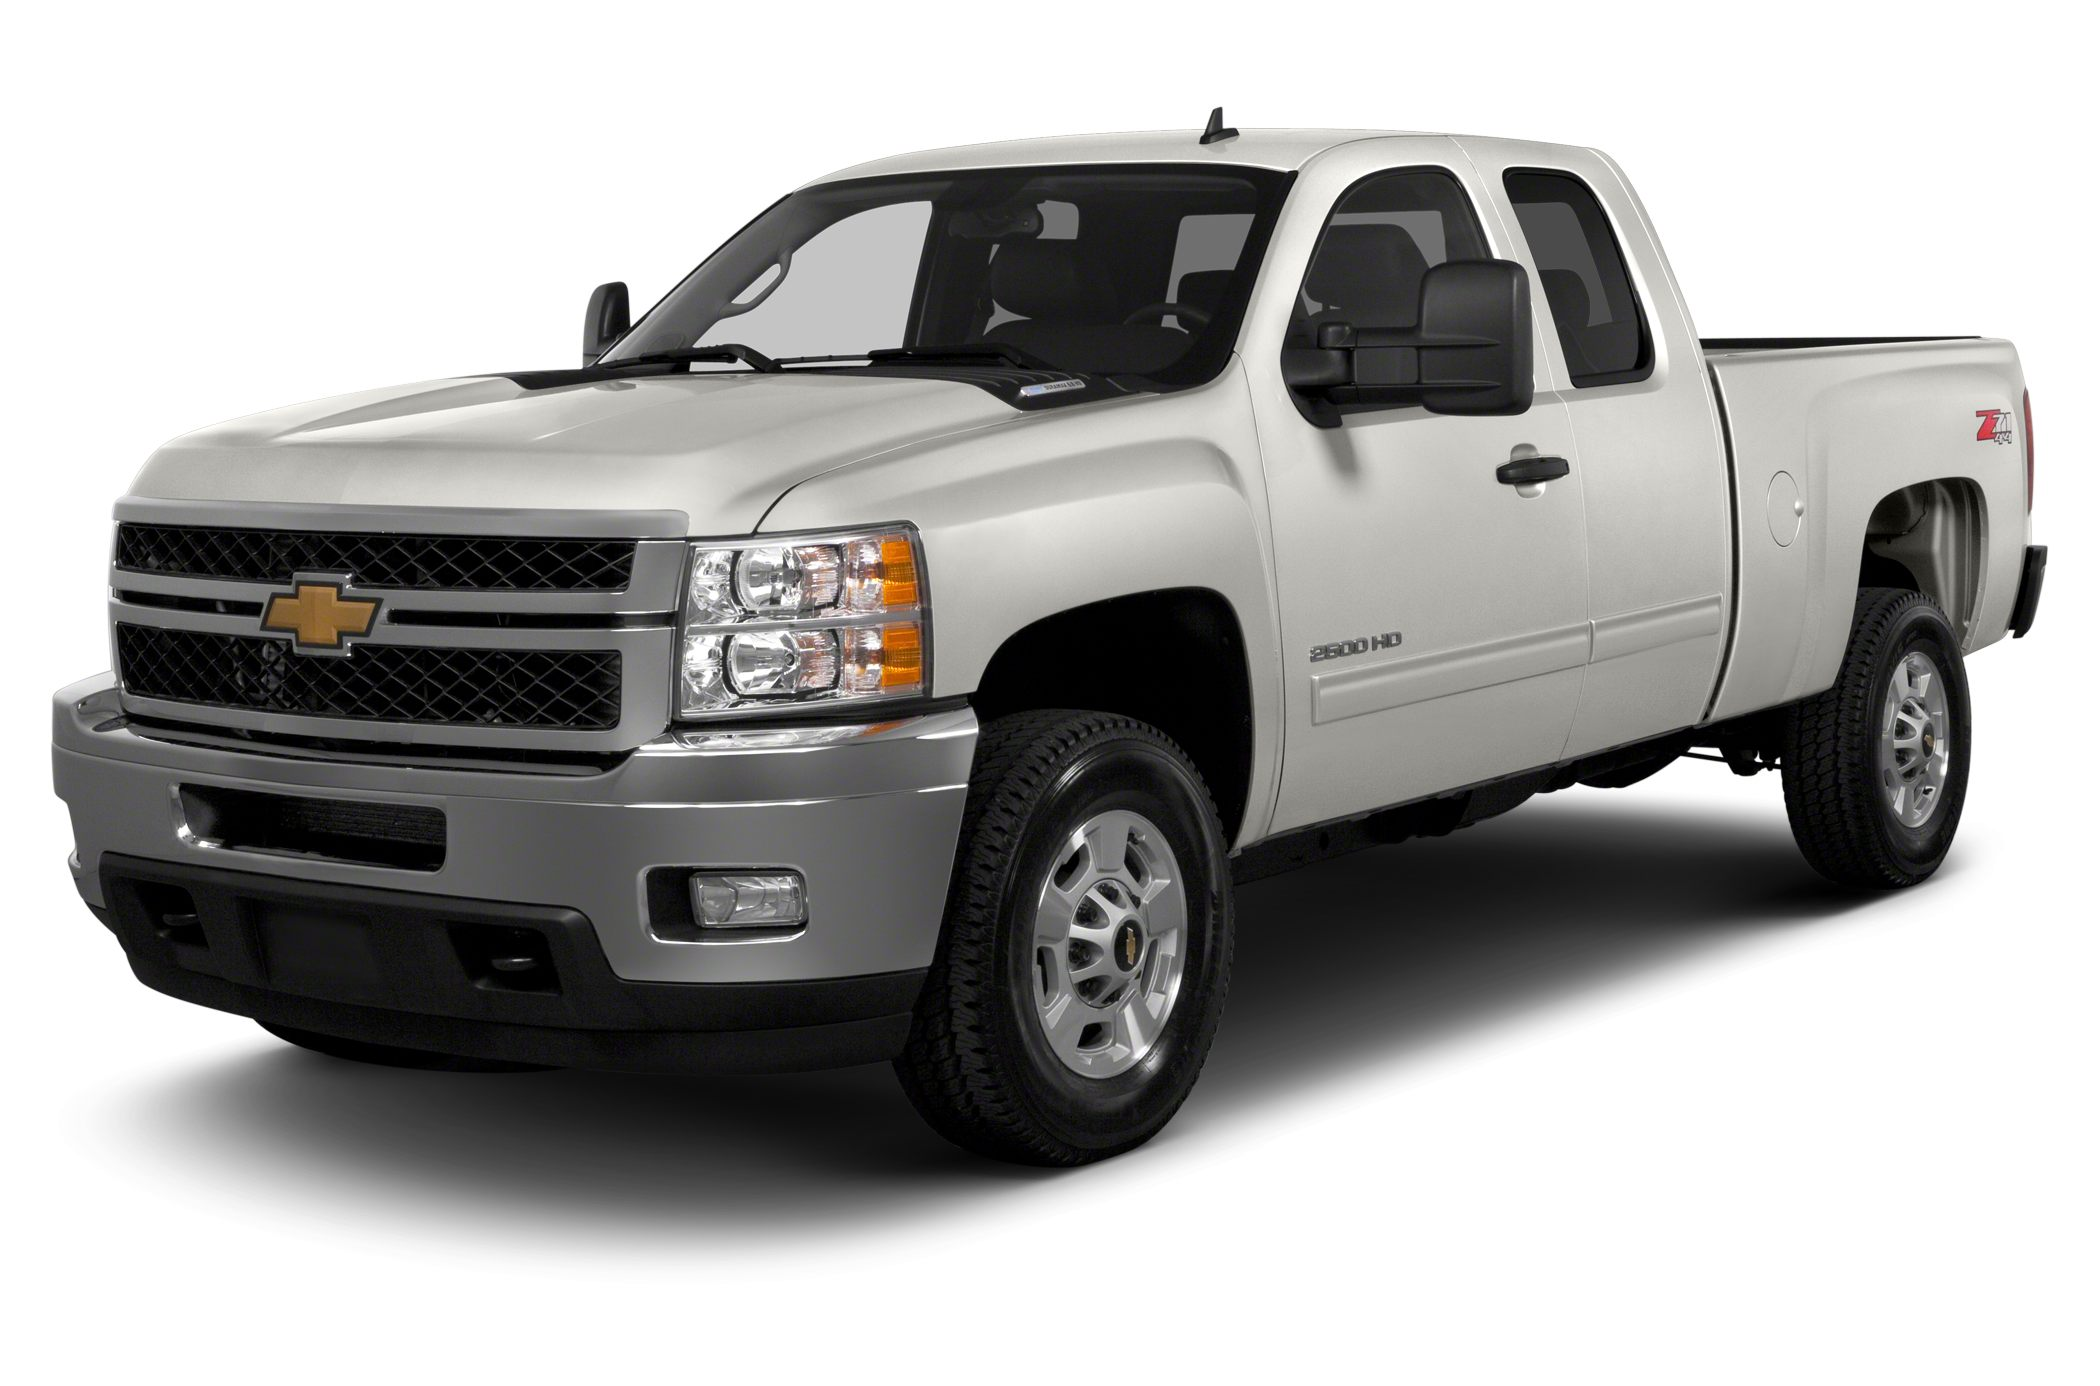 2013 Chevrolet Silverado 2500 Work Truck Regular Cab Pickup for sale in Waynesboro for $26,995 with 23,510 miles.